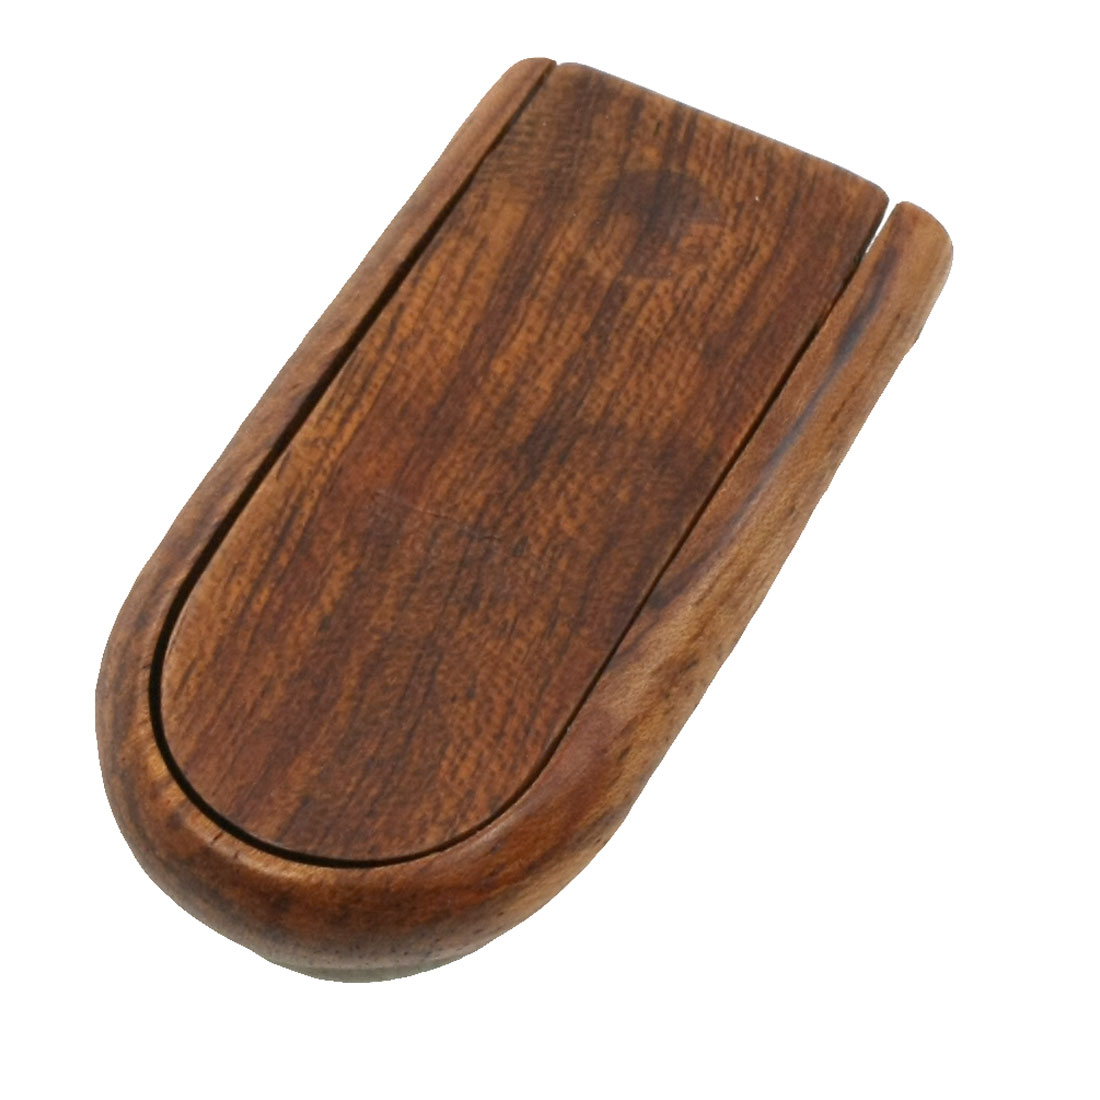 Wooden Simple Practical Foldable Folding Smoking Pipe Stand Rack Holder